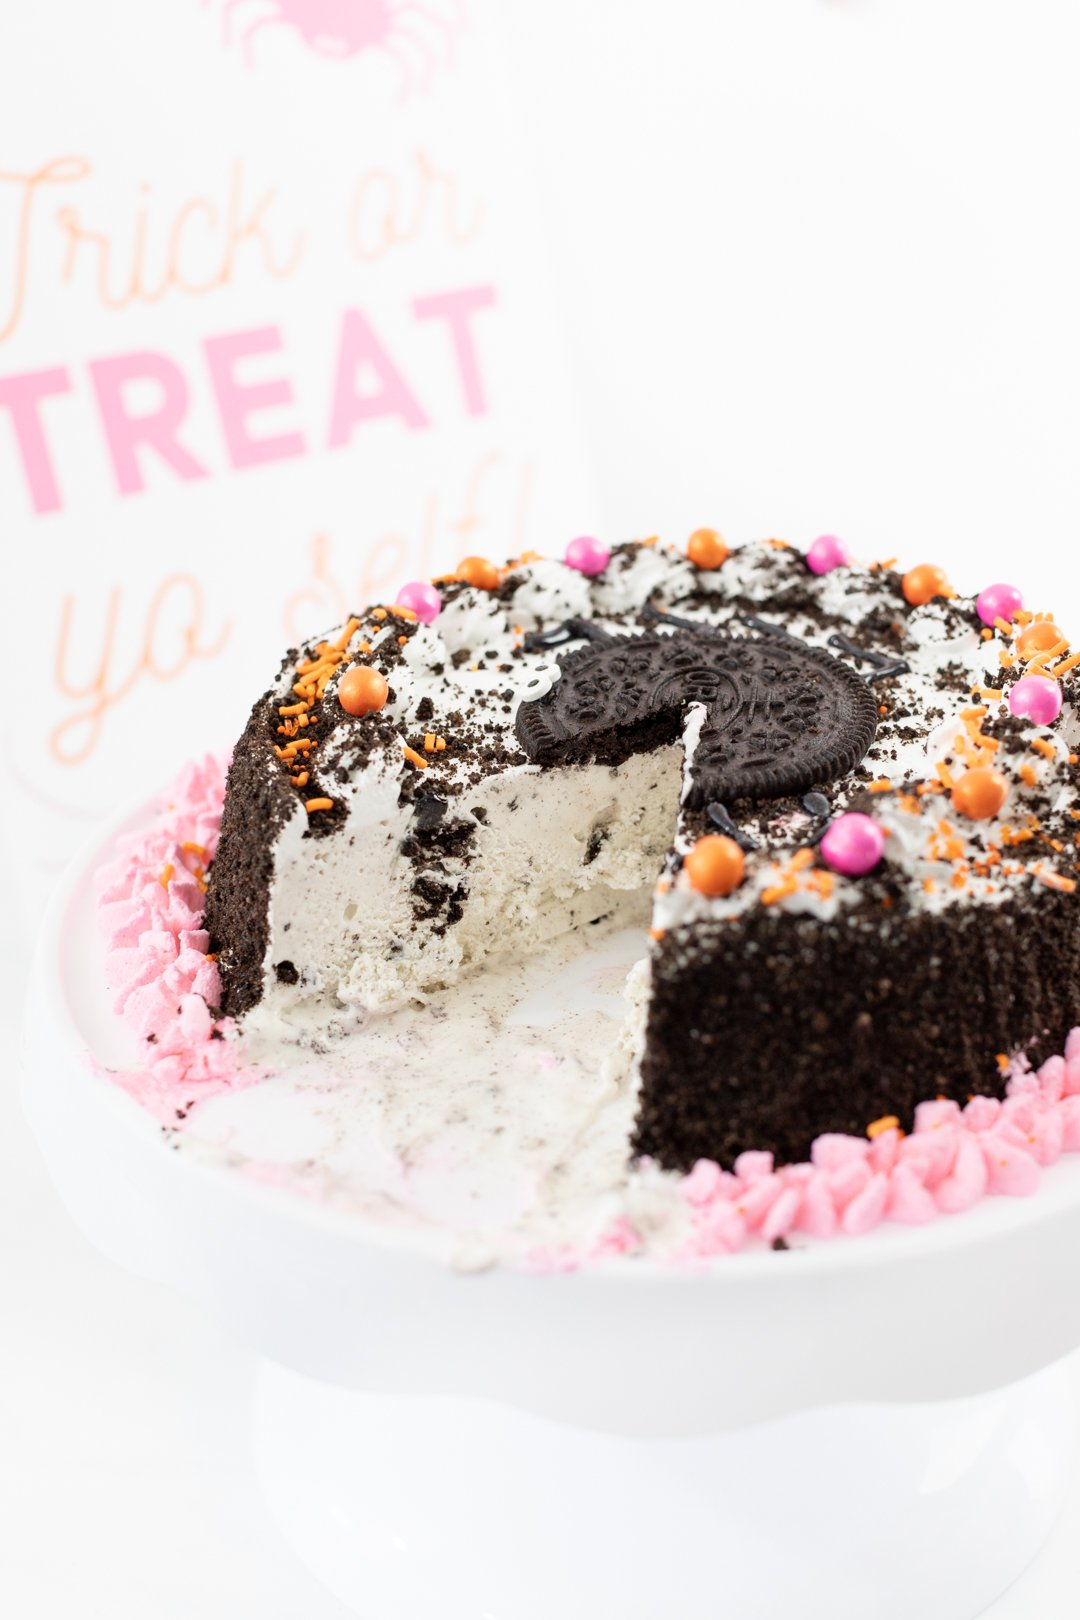 OREO Ice Cream cake with pink and orange embellishments.